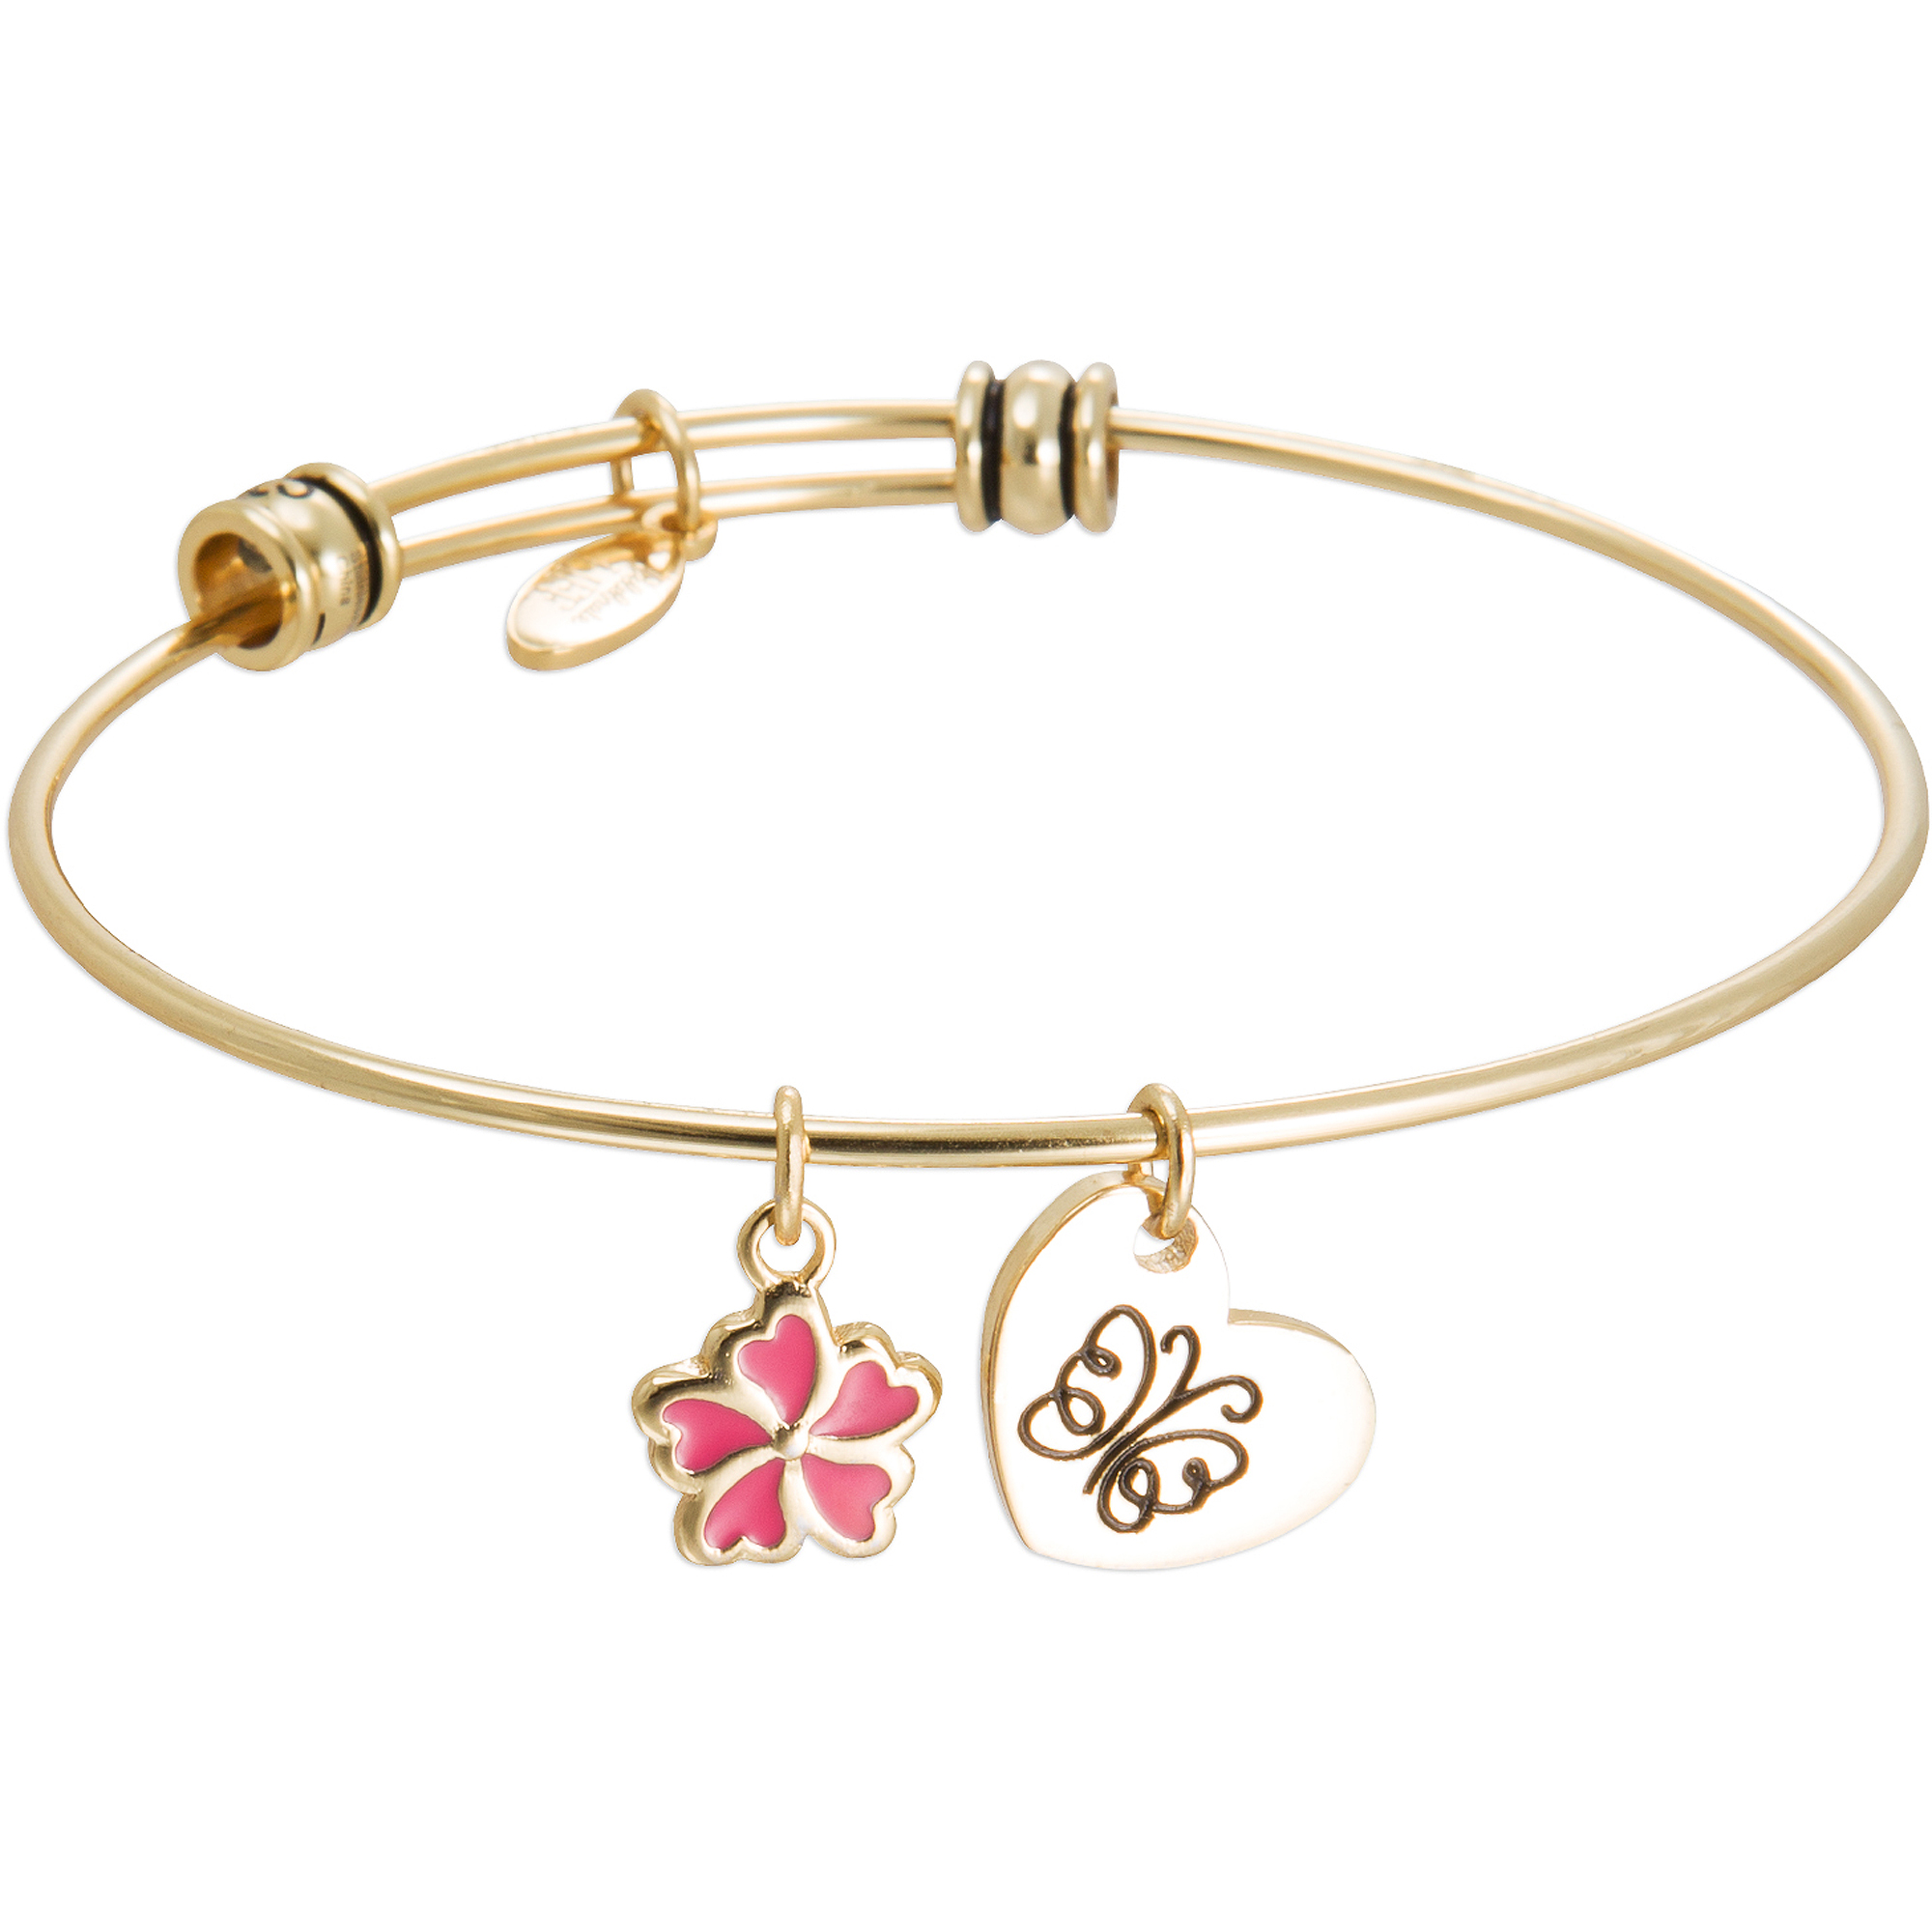 "Connections from Hallmark Stainless Steel Yellow-Tone ""Sisters"" and Flower Multi-Charm Wire Bangle, 7.75"